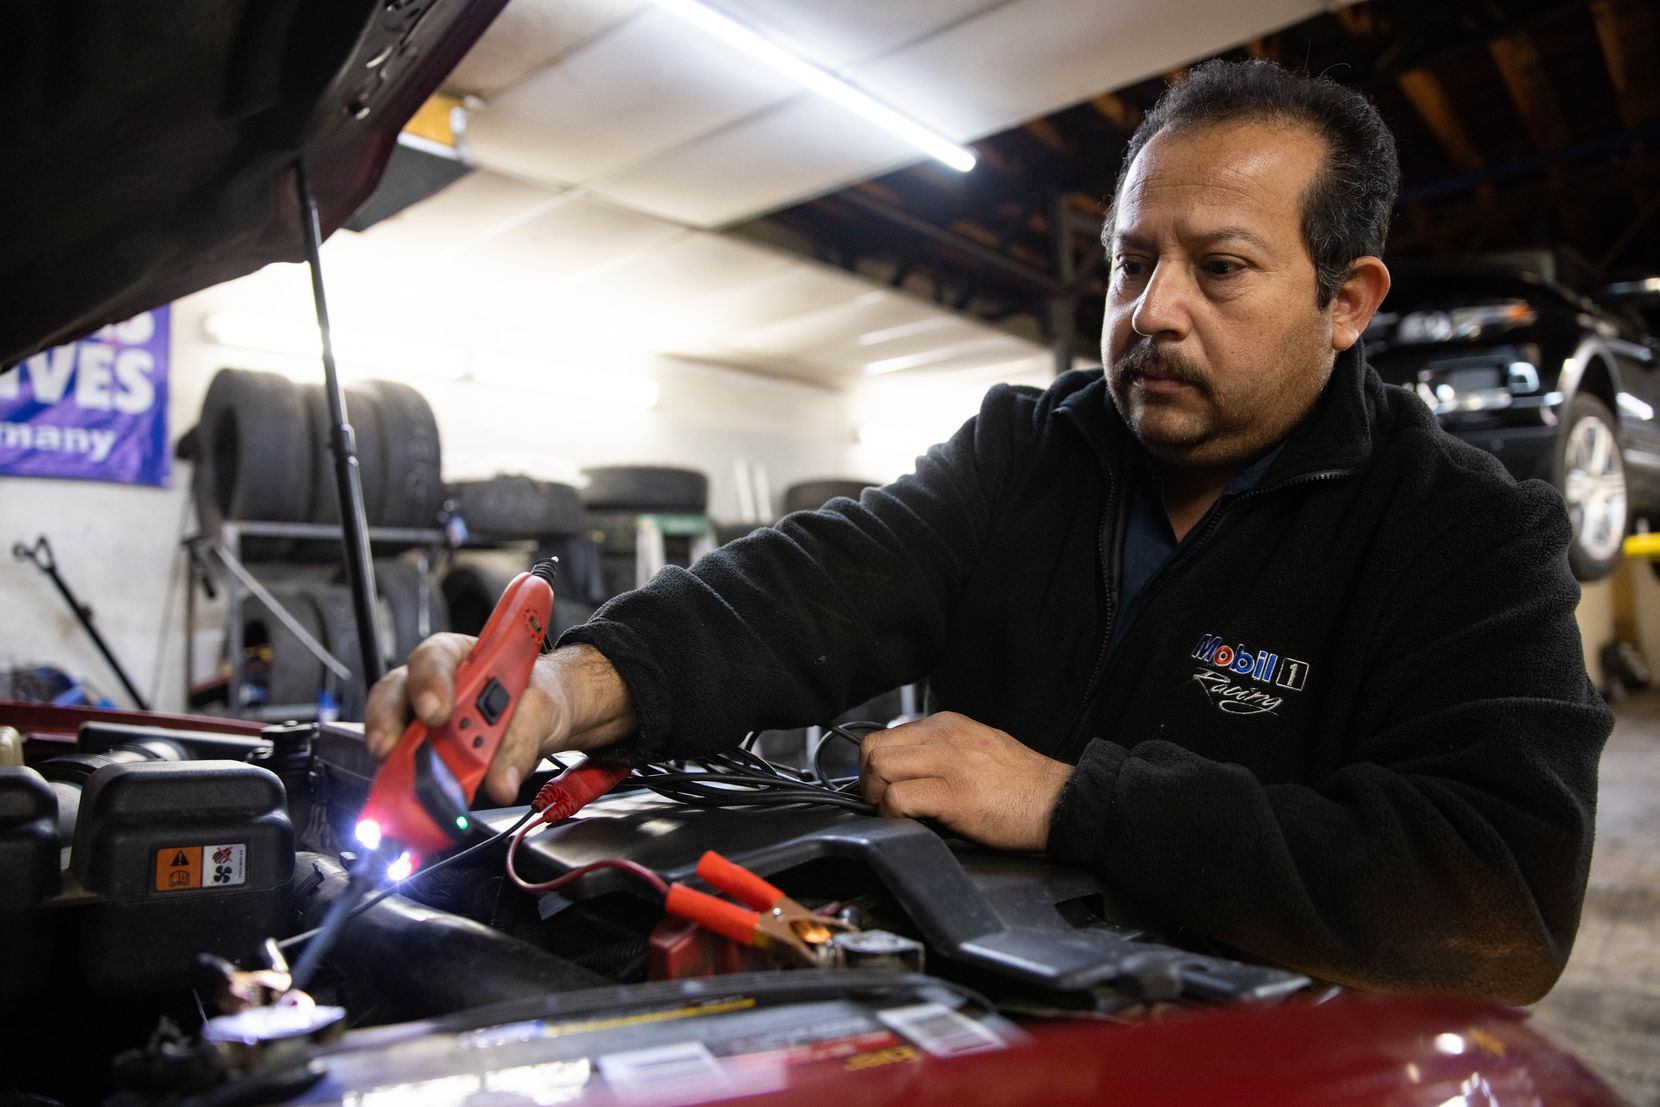 Joaquin Godinez services a car at his auto repair shop in southeast Dallas. He now has Temporary Protected Status and wants permanent immigration status for many reasons, including increasing his ability to secure bank loans that will build his business.